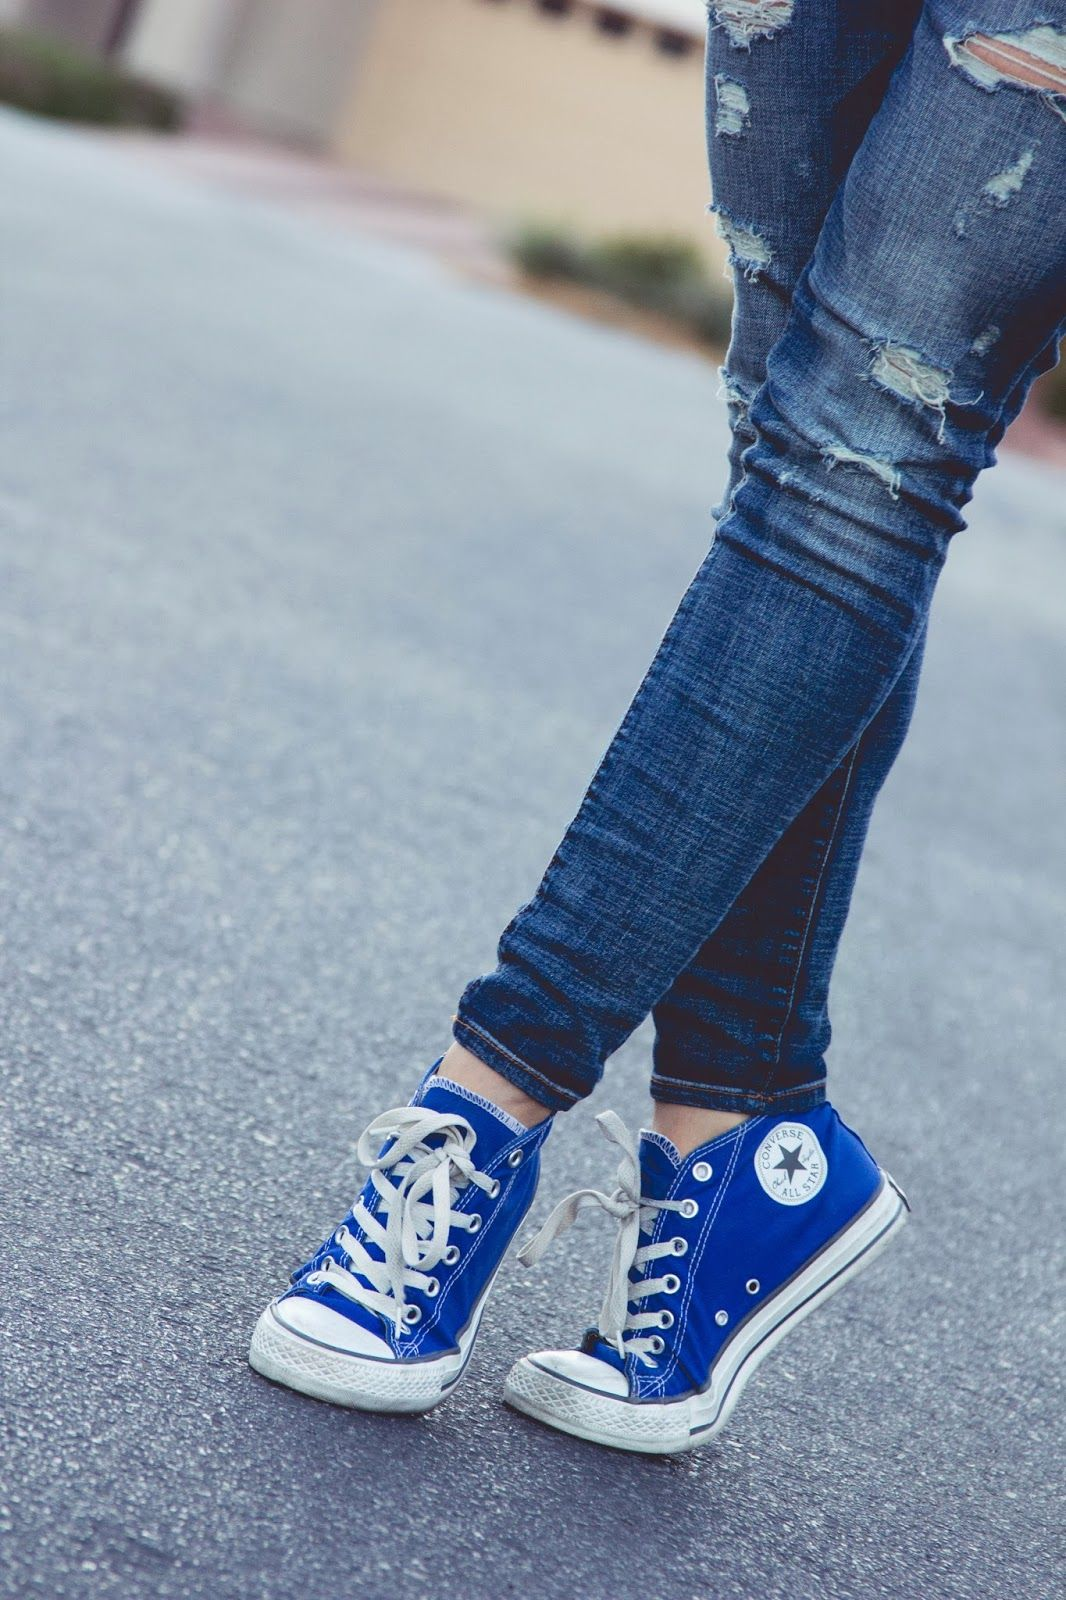 0c89fe762360 Love the blue! Wearing these on the blog today!  chucks  Marshalls   fabfound  myfavoritecolorisblue